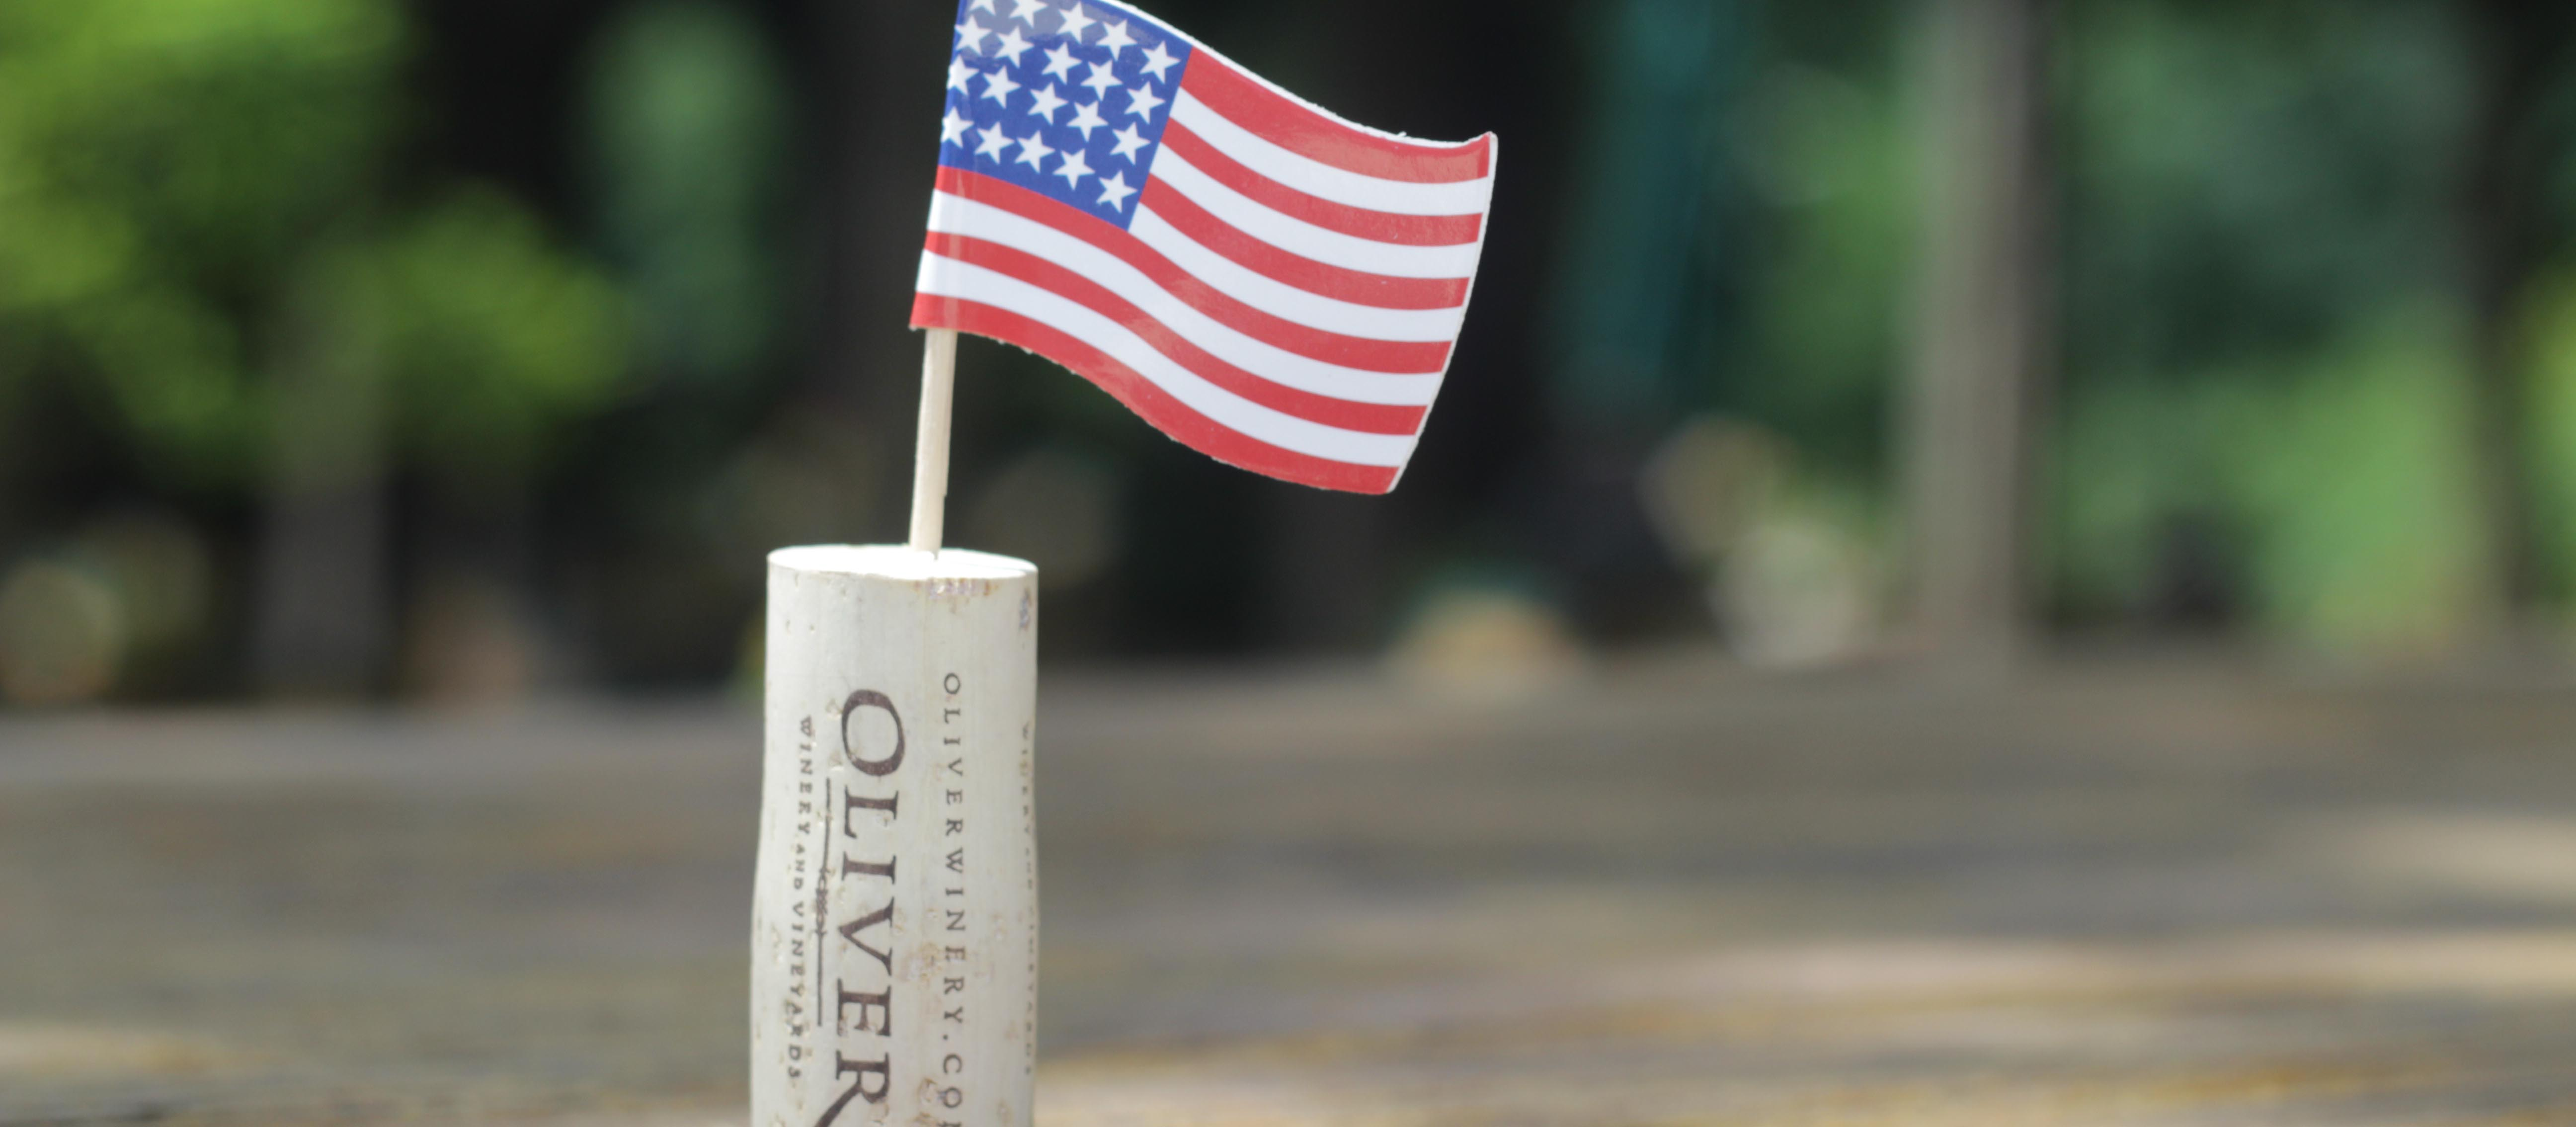 Oliver Winery cork with American flag.